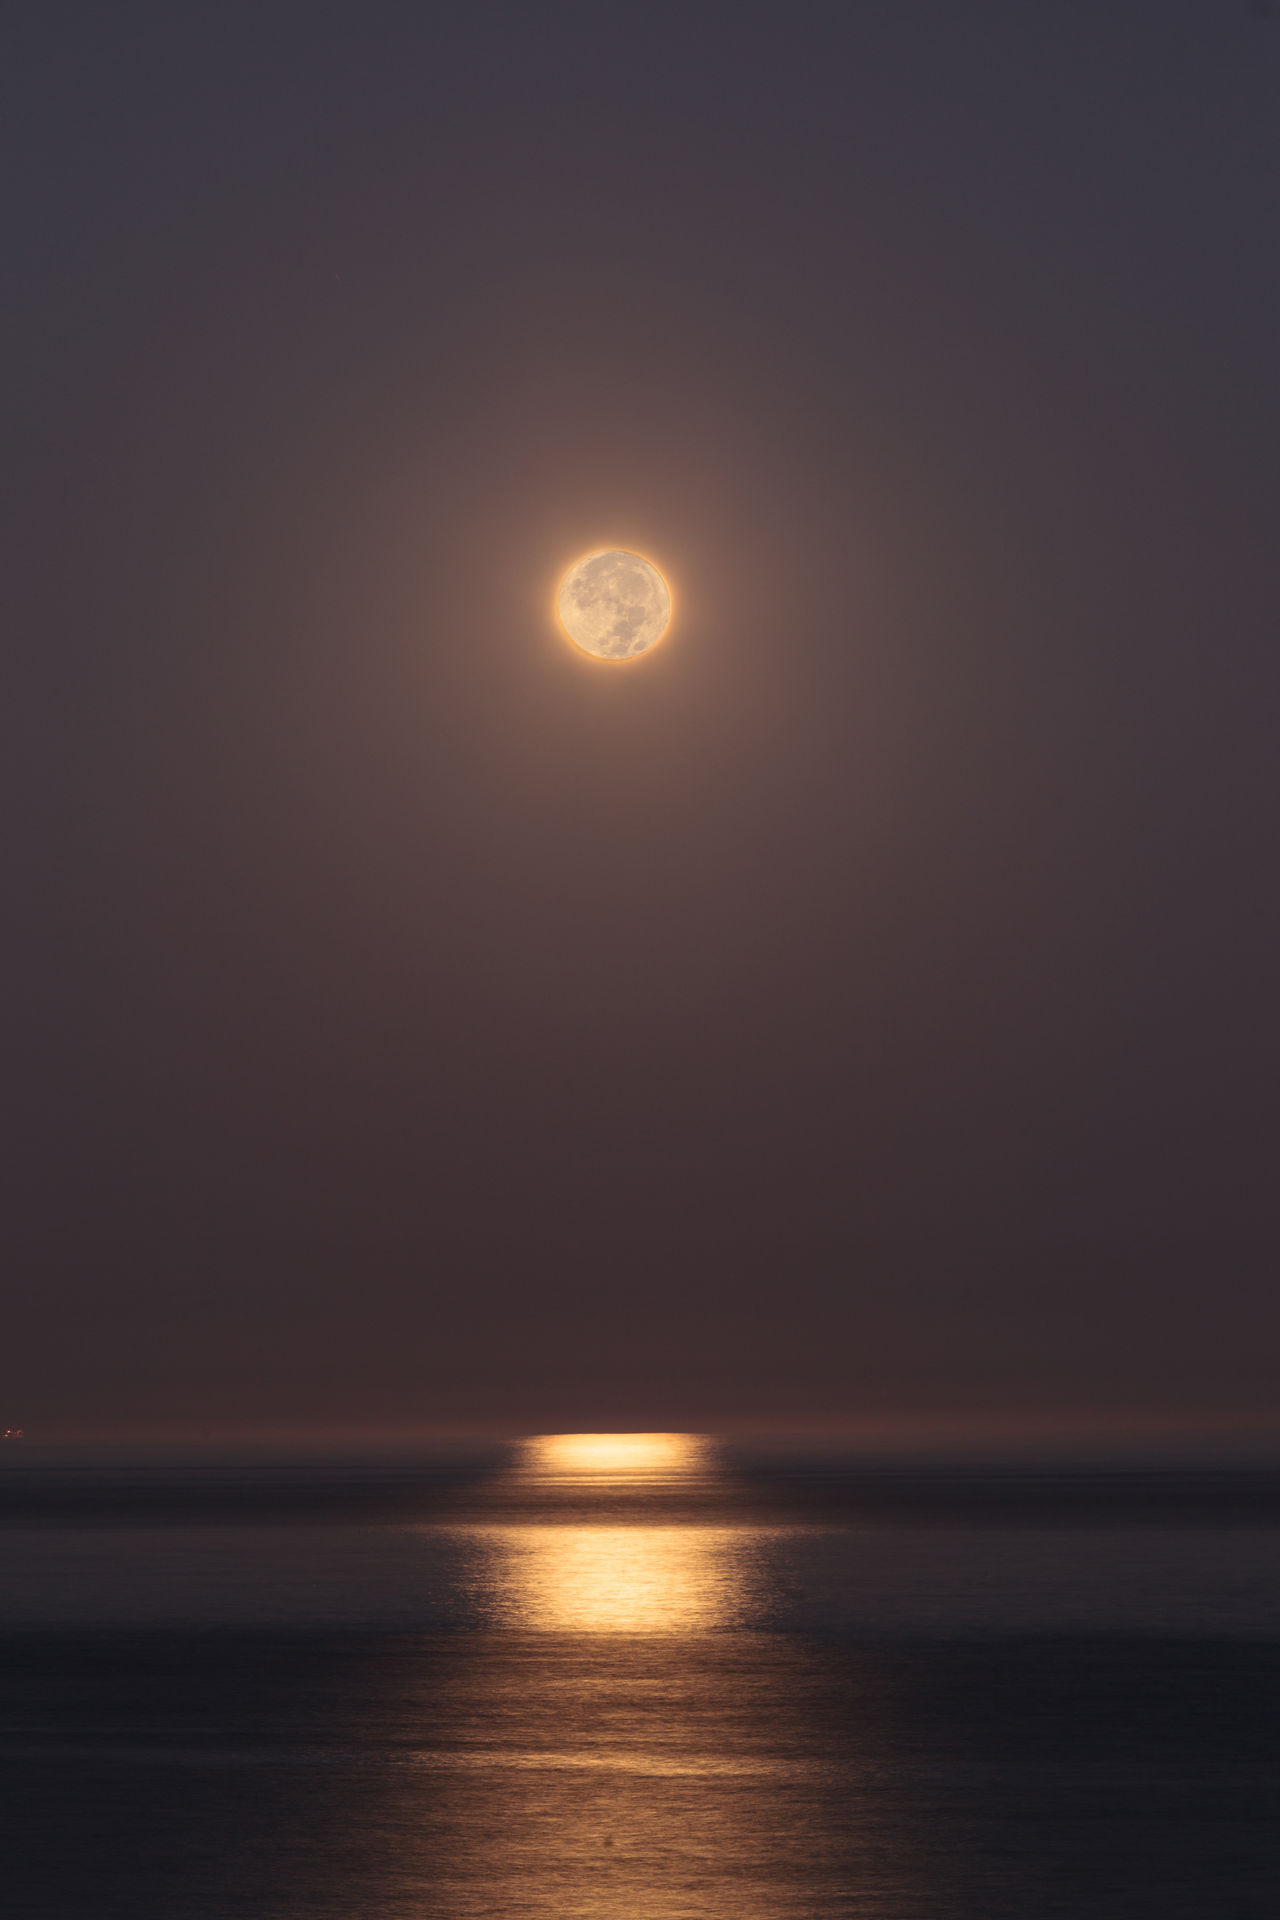 Super moon sets over the Pacific ocean in Laguna Beach, California, United States Beauty In Nature California Horizon Over Water Laguna Beach, CA Moon Moonset Nature No People Ocean Outdoors Scenics Sea Sea And Sky Sky Sunset Tranquil Scene Tranquility United States Water